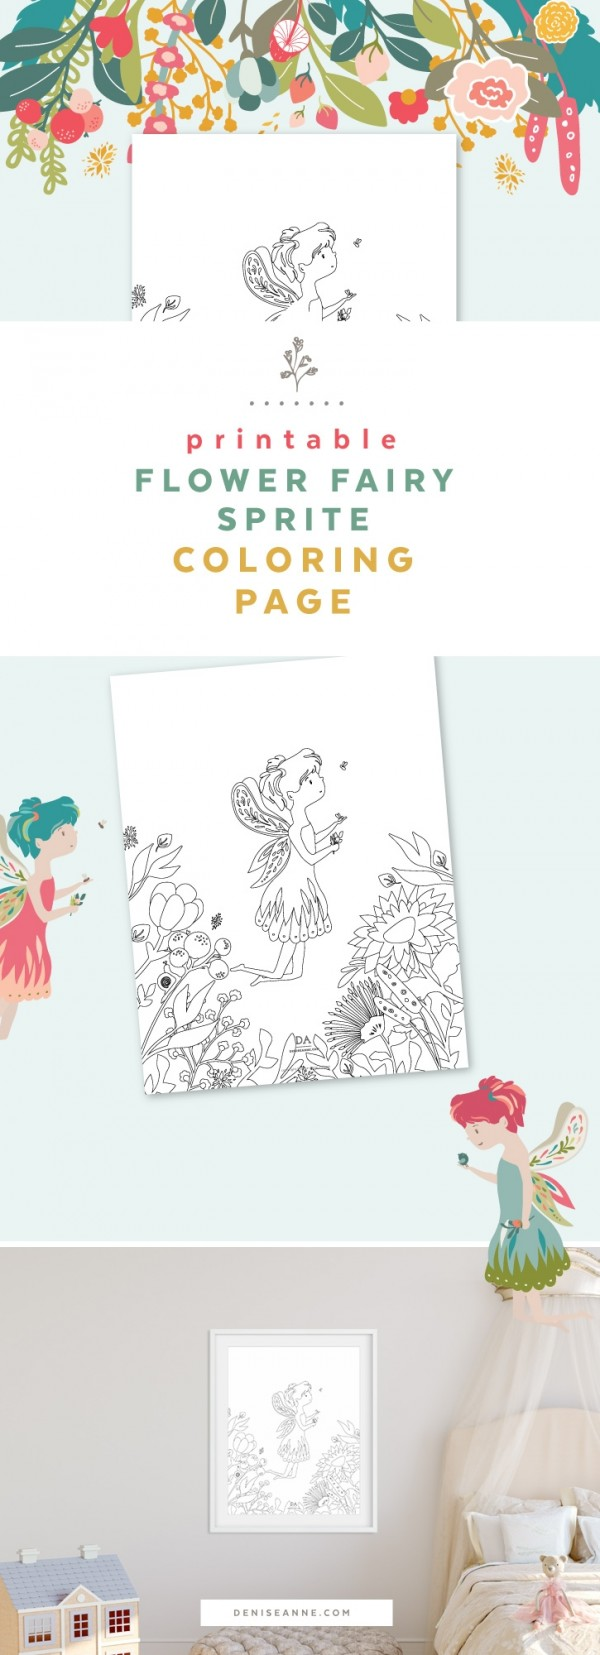 Printable: Flower Fairy Coloring Page